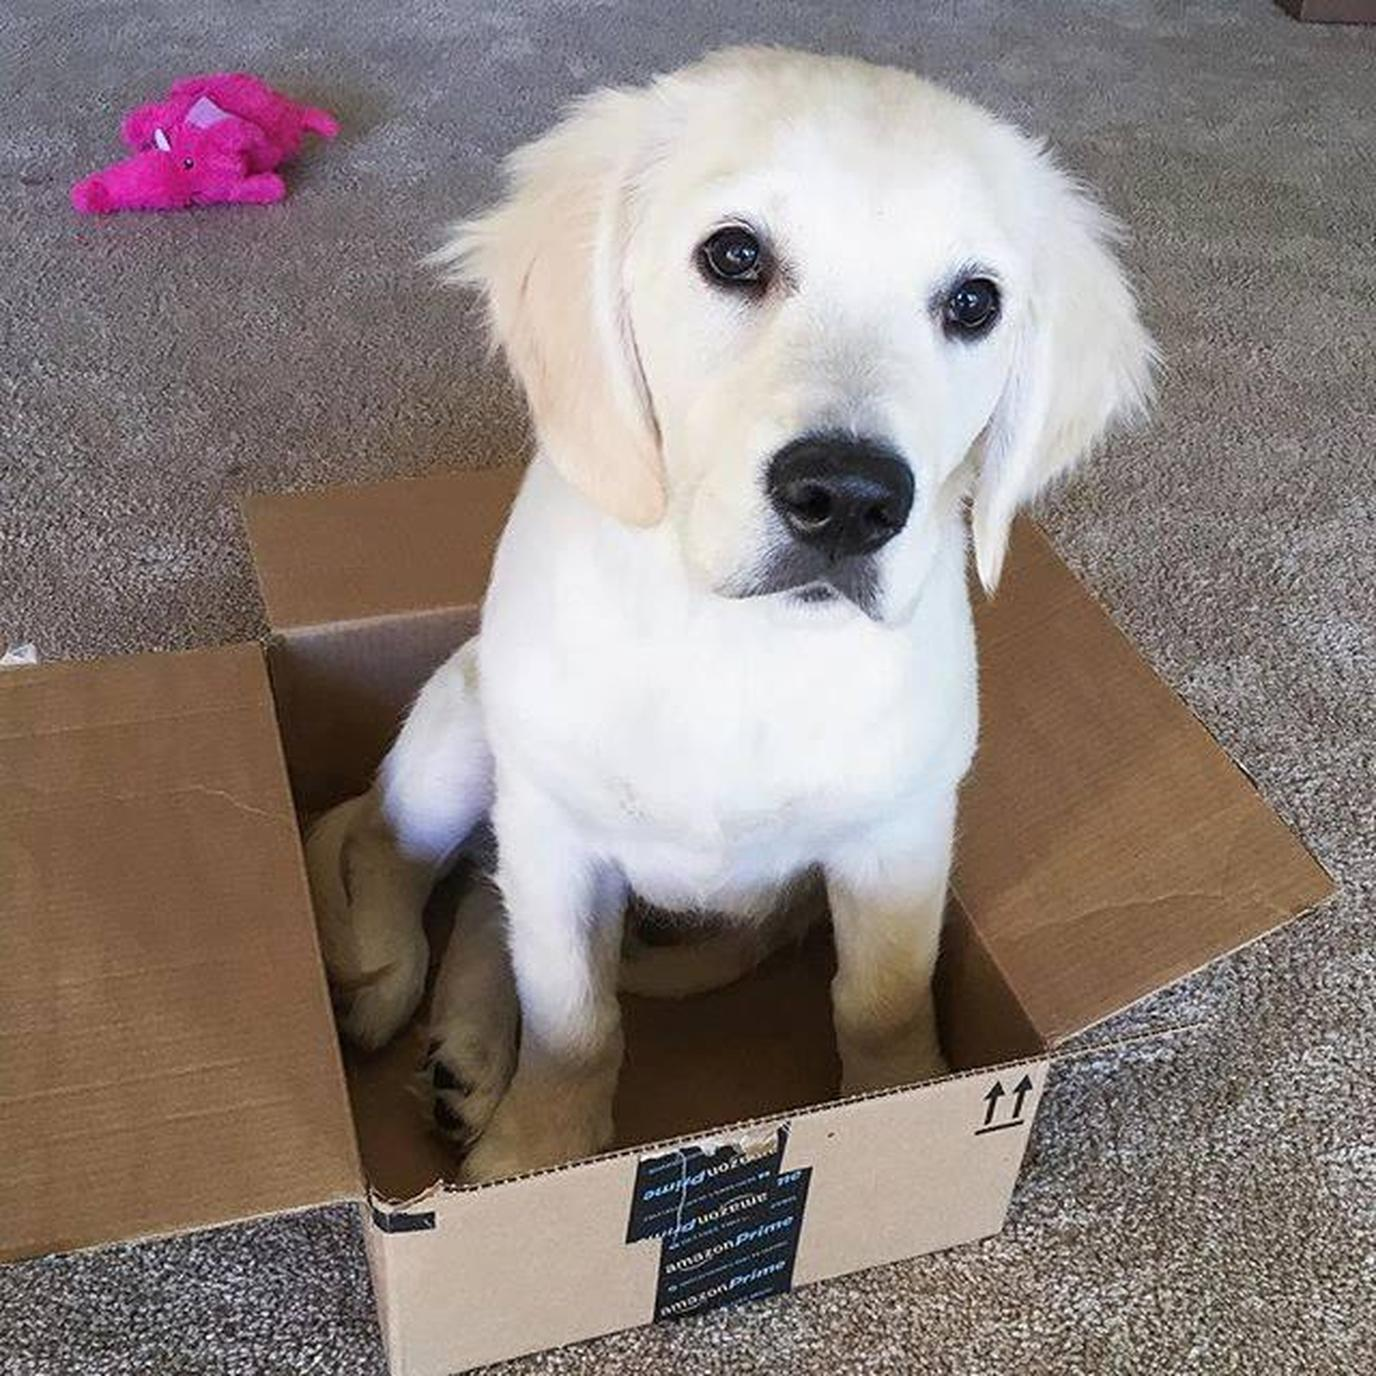 A Puppy Sits in an Amazon Box.